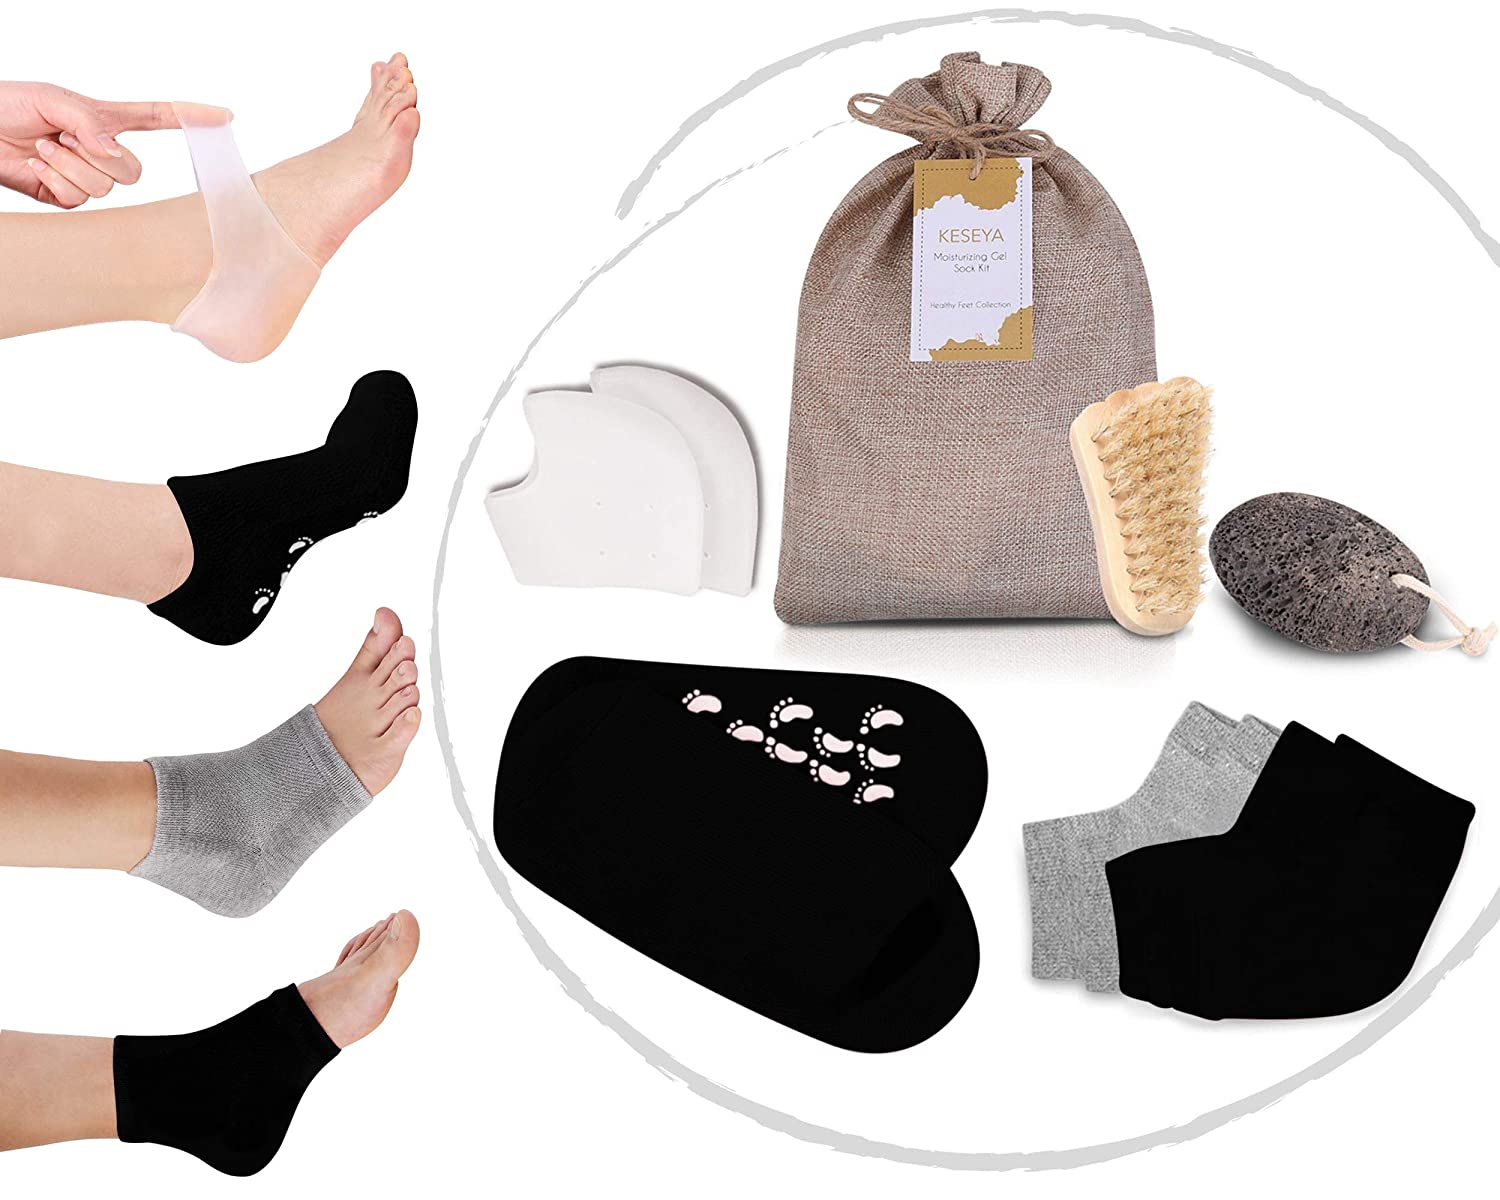 Self Care Gift for Women | Foot Care Kit Includes Round-the-Clock Moisturizing Heel Treatment Socks plus Foot Exfoliator and Brush for Soft Summer Ready Feet | Useful Relaxing Foot Care Gift Idea.